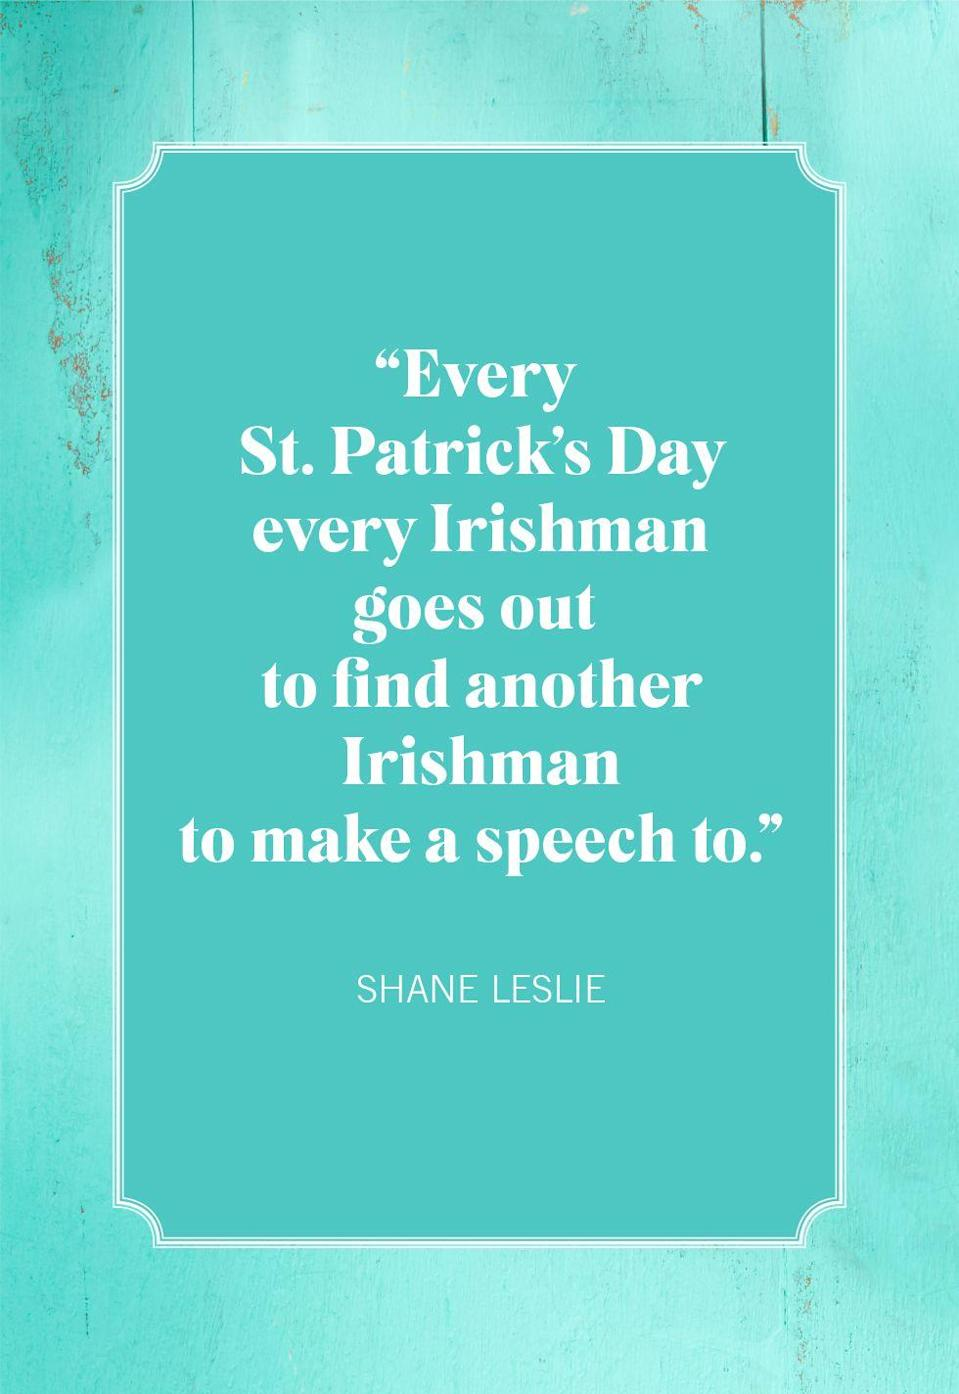 "<p>""Every St. Patrick's Day every Irishman goes out to find another Irishman to make a speech to.""</p>"